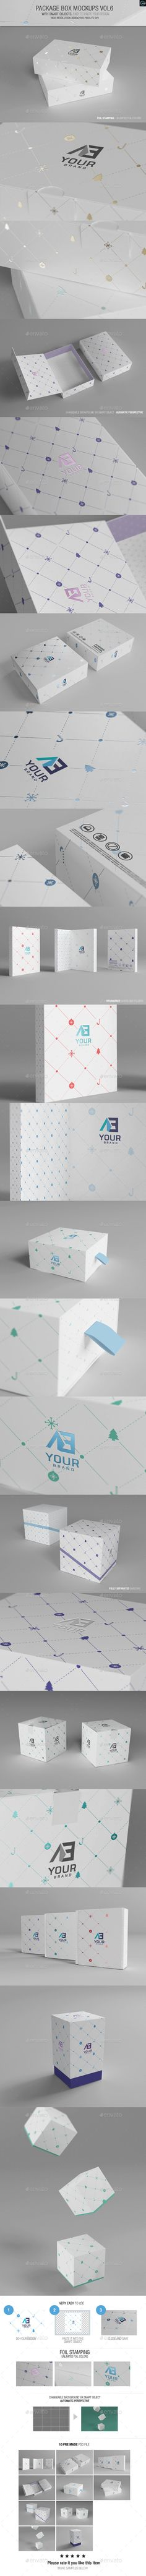 Package Box Mockups | Download: http://graphicriver.net/item/package-box-mockups-vol6/9533868?ref=ksioks